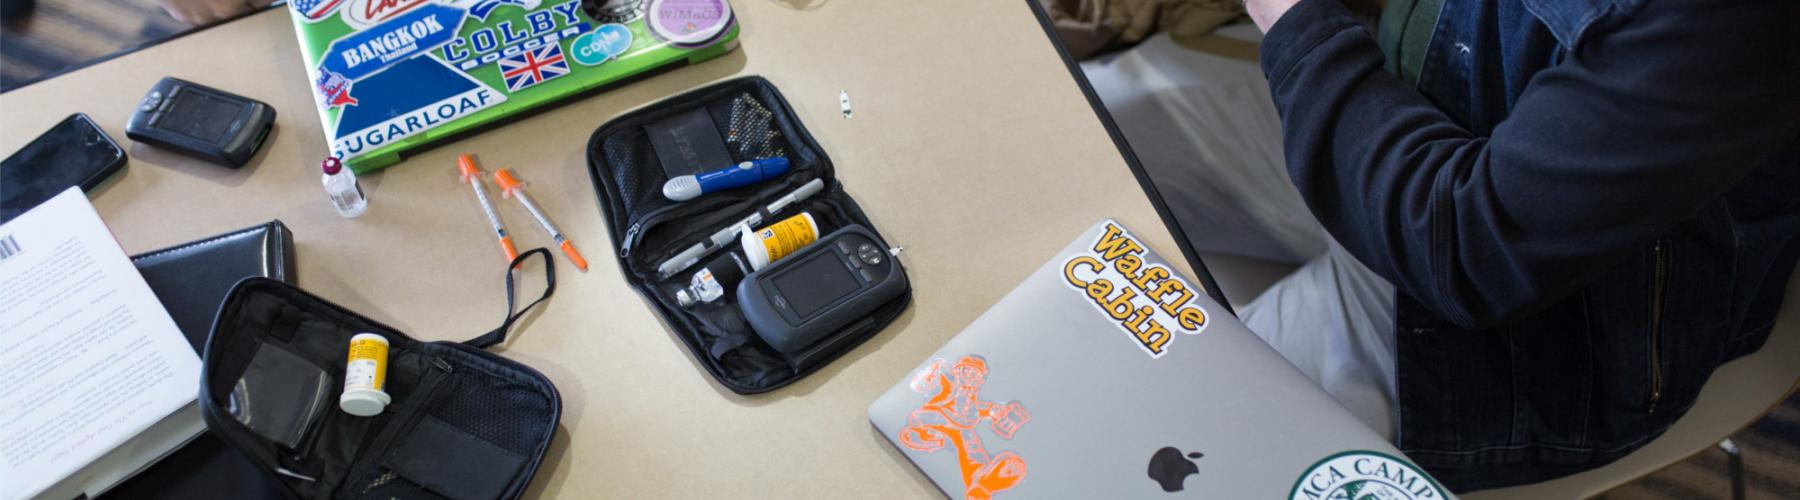 Desk with T1D supplies